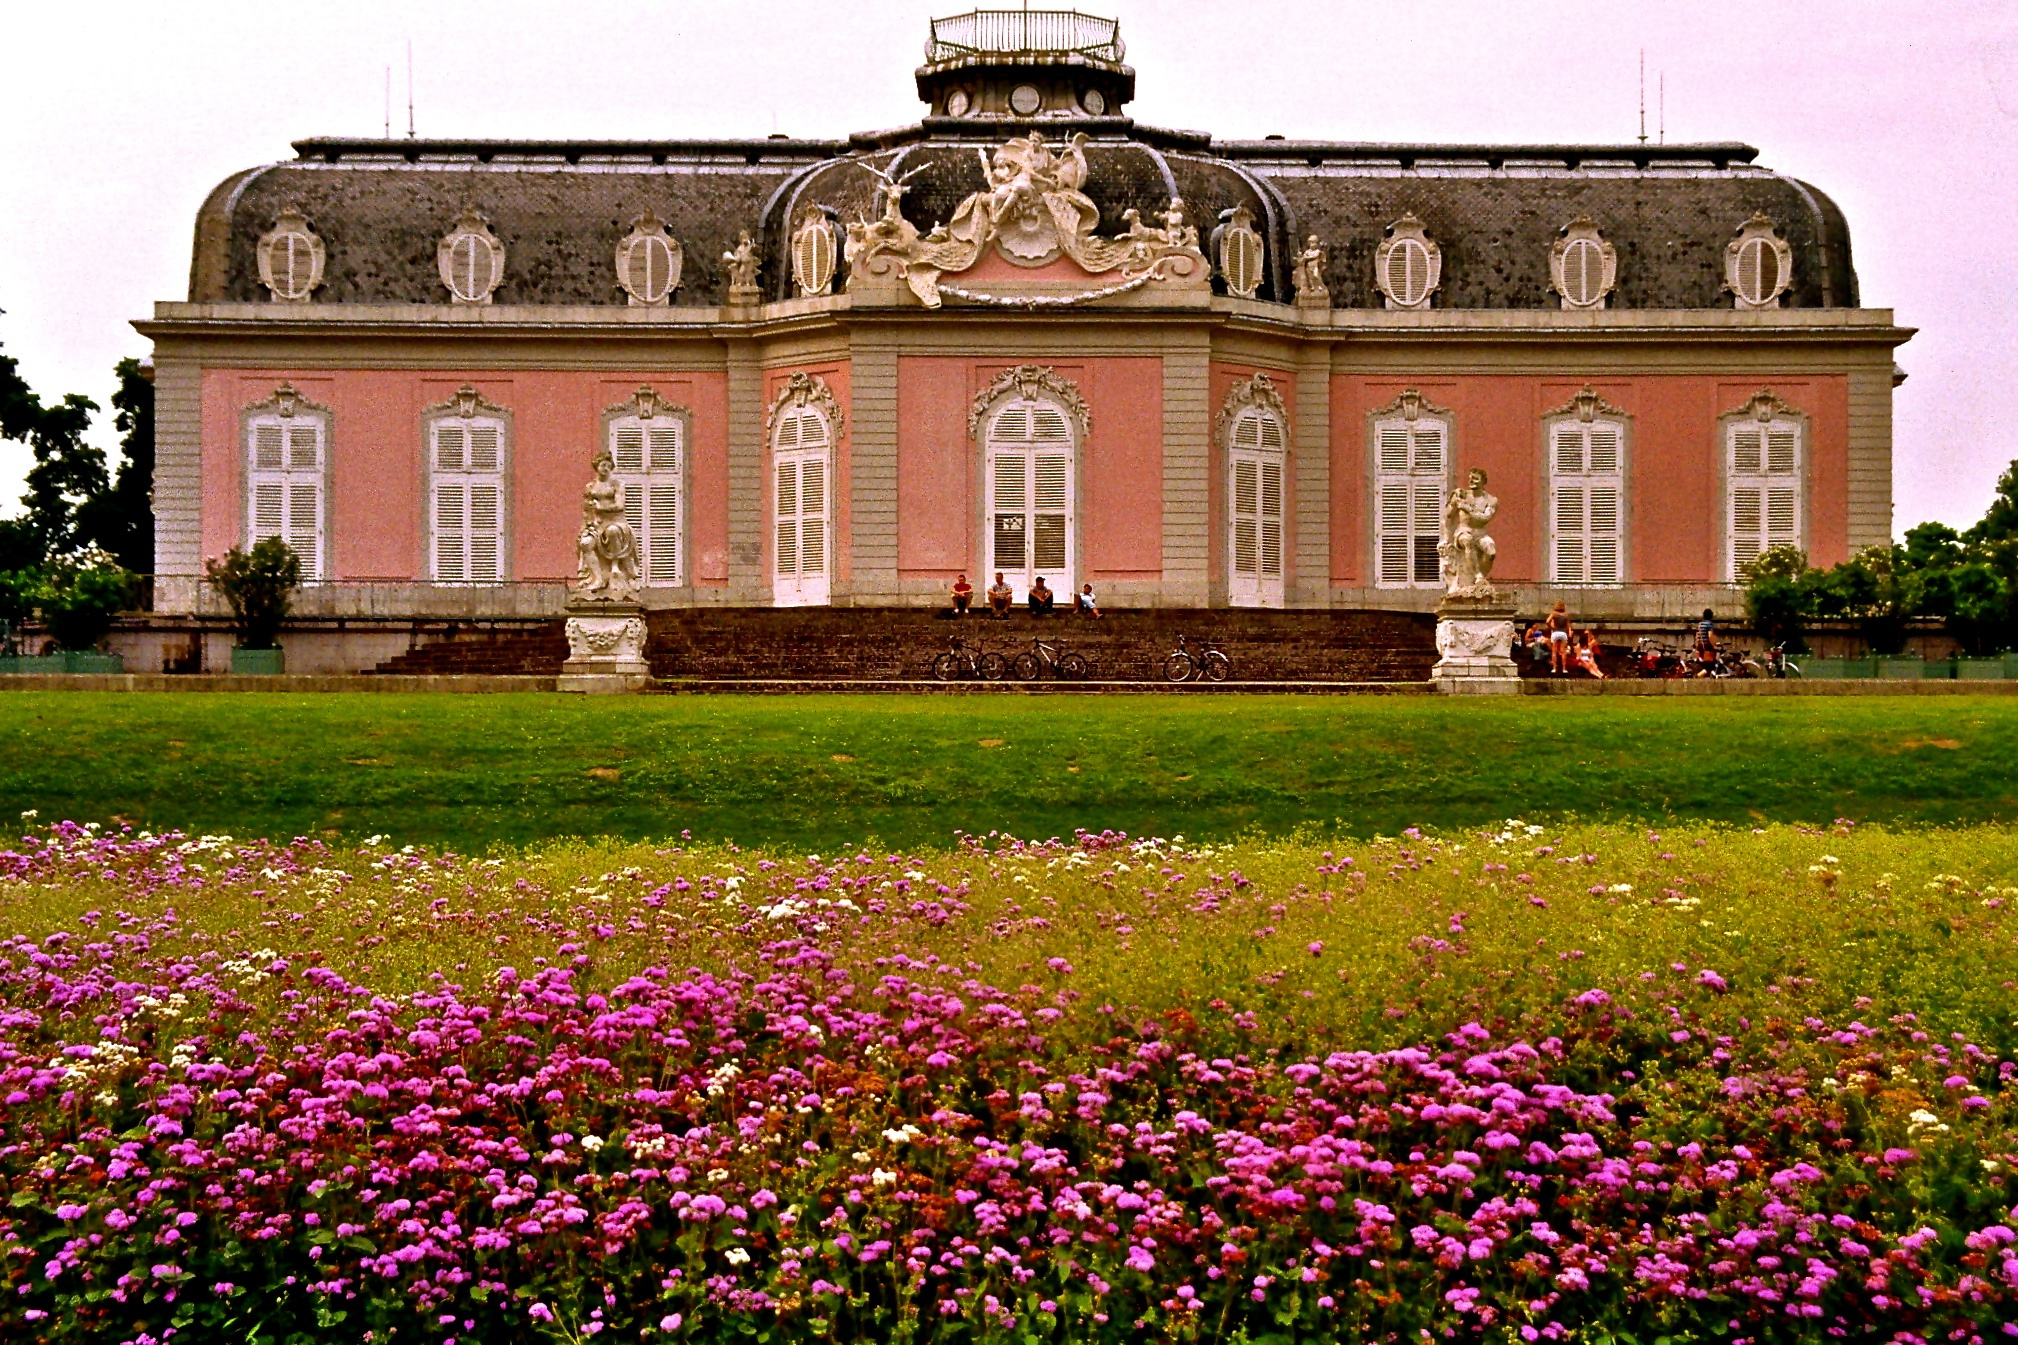 The facade of Schloss Benrath one of the best things to do in Düsseldorf